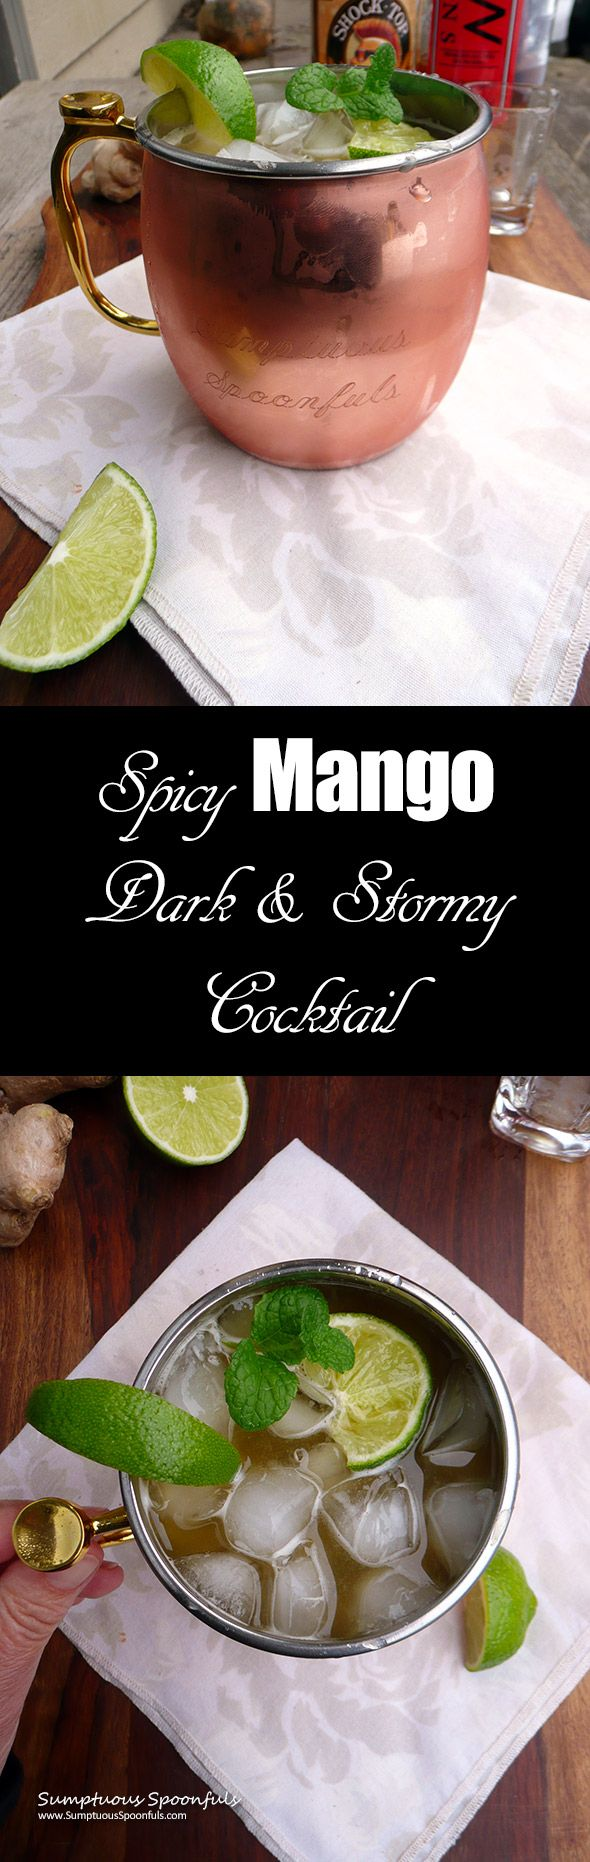 Spicy Mango Dark & Stormy Cocktail ~ Sumptuous Spoonfuls #cocktail #recipe